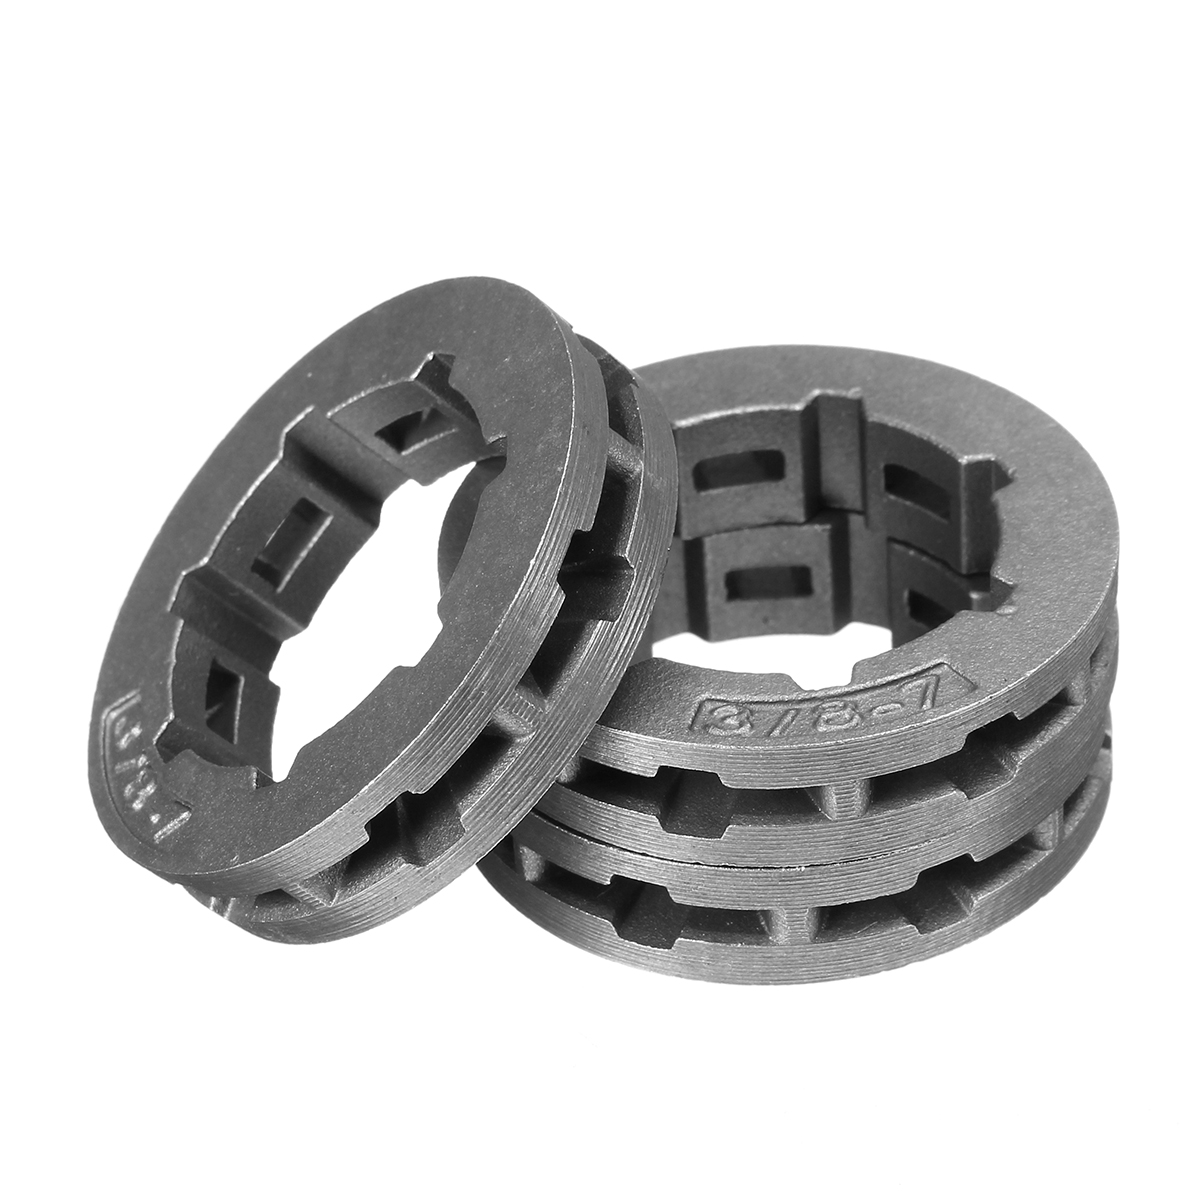 3pcs Sprocket Rim For Stihl 024 026 028 029 034 MS260 M for sale